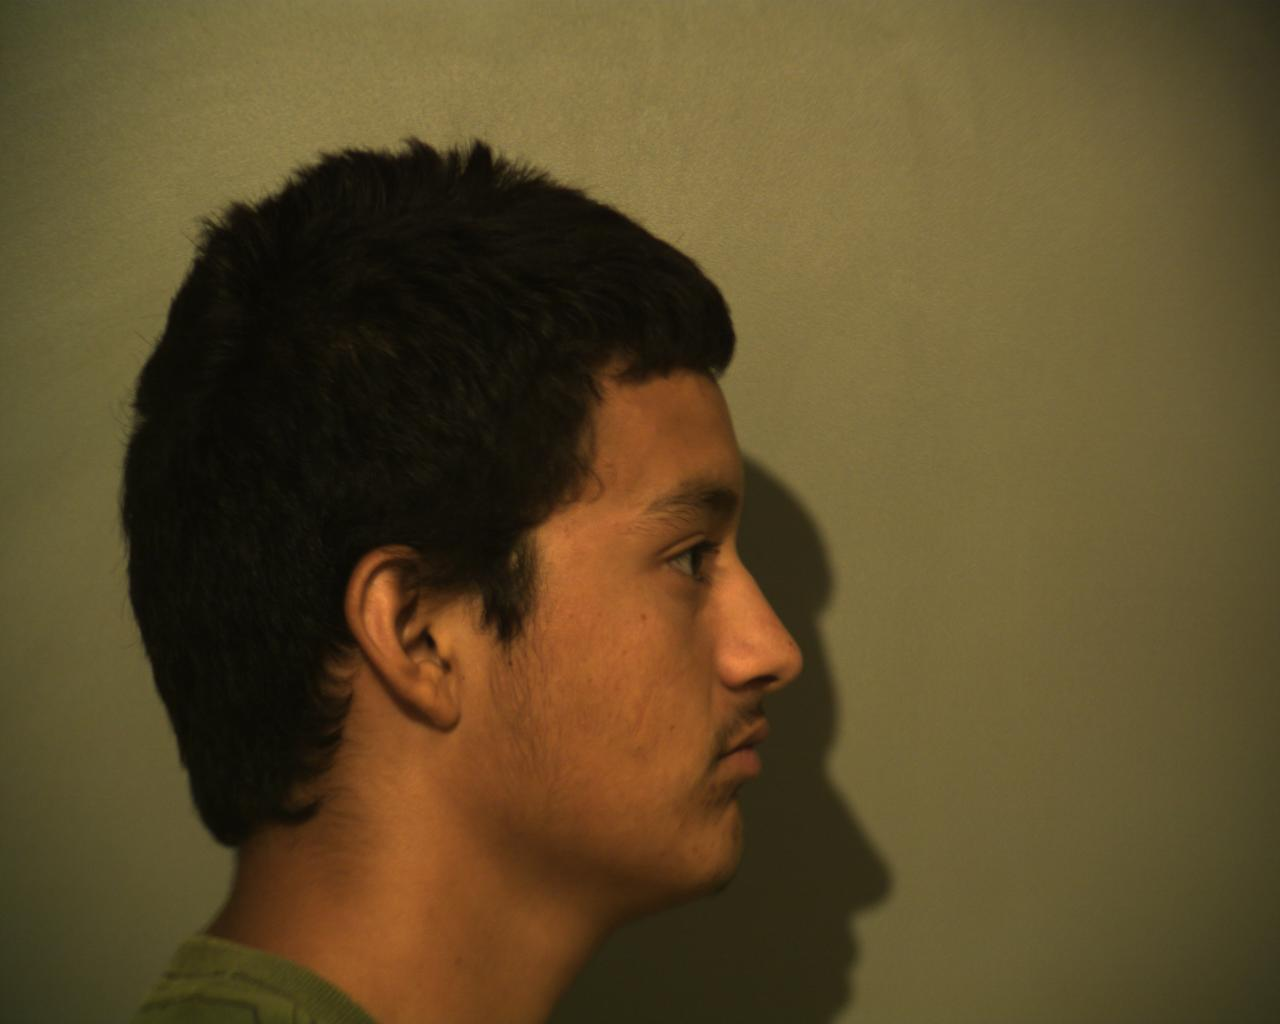 Jose Heriberto Zuniga, 21, of Peñitas is charged with bringing in and harboring aliens. (Photo courtesy of the Hidalgo County Sheriff's Office)